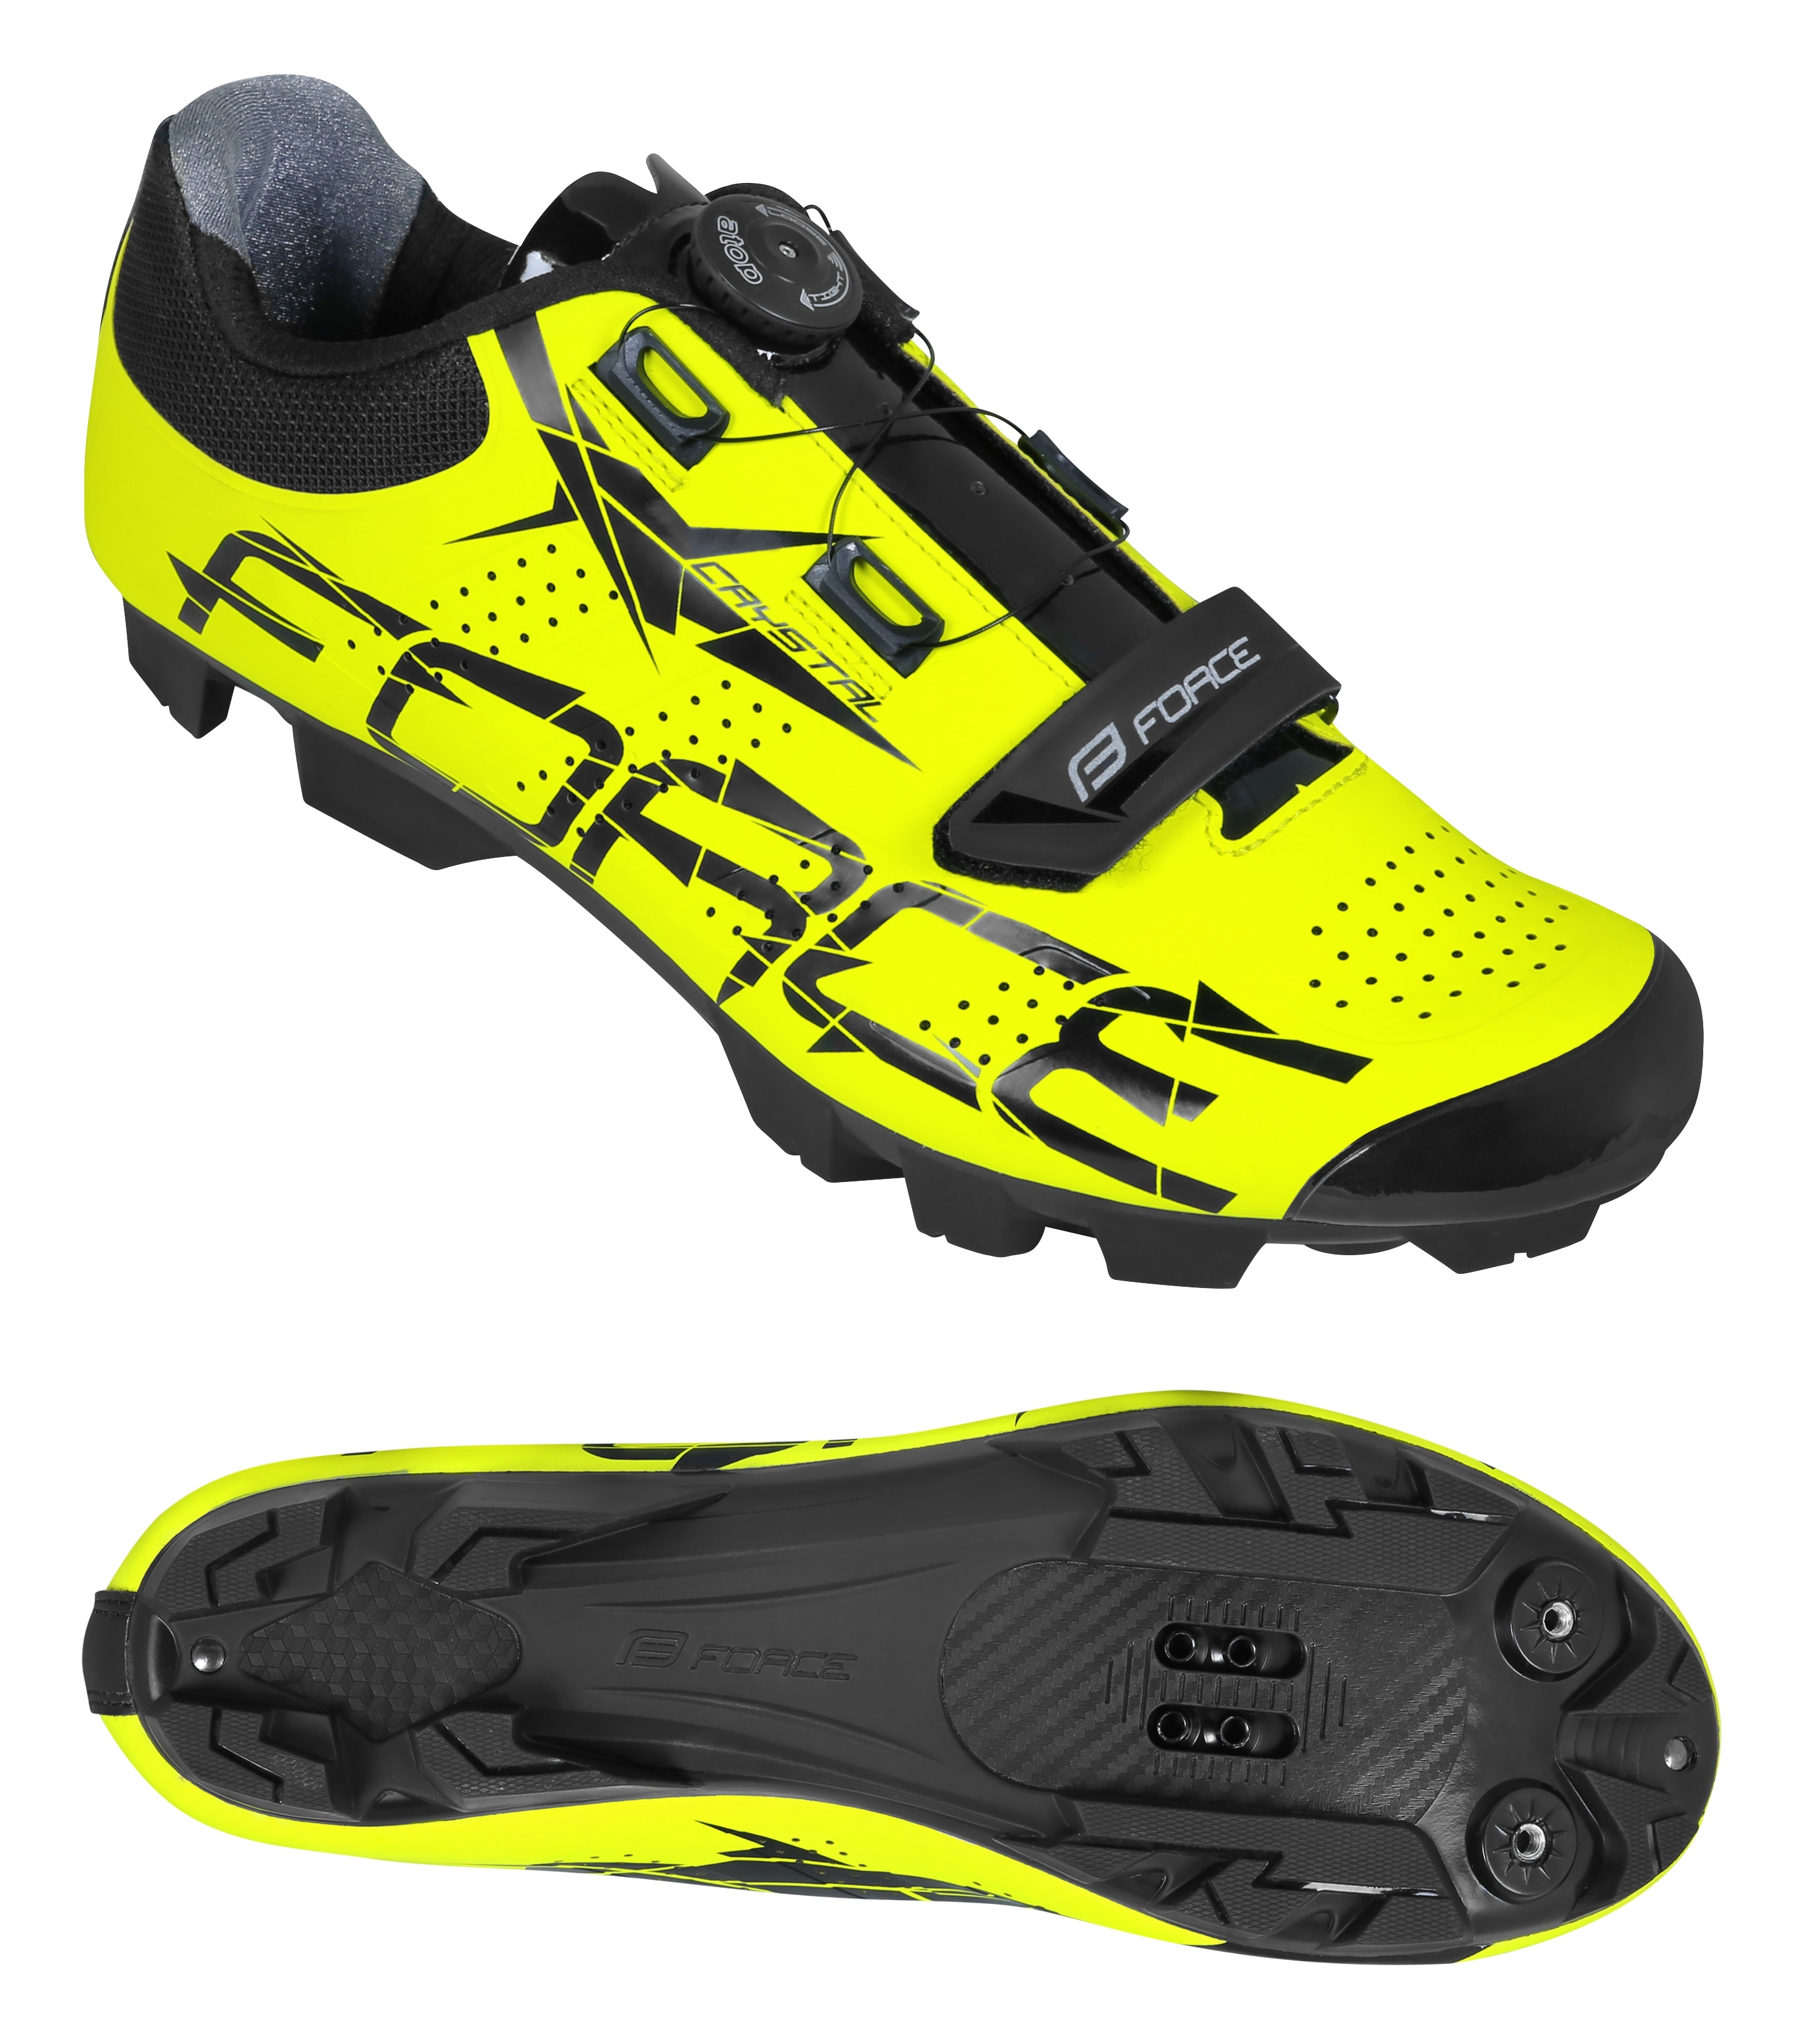 Tretry FORCE MTB CRYSTAL vel. 45, fluo